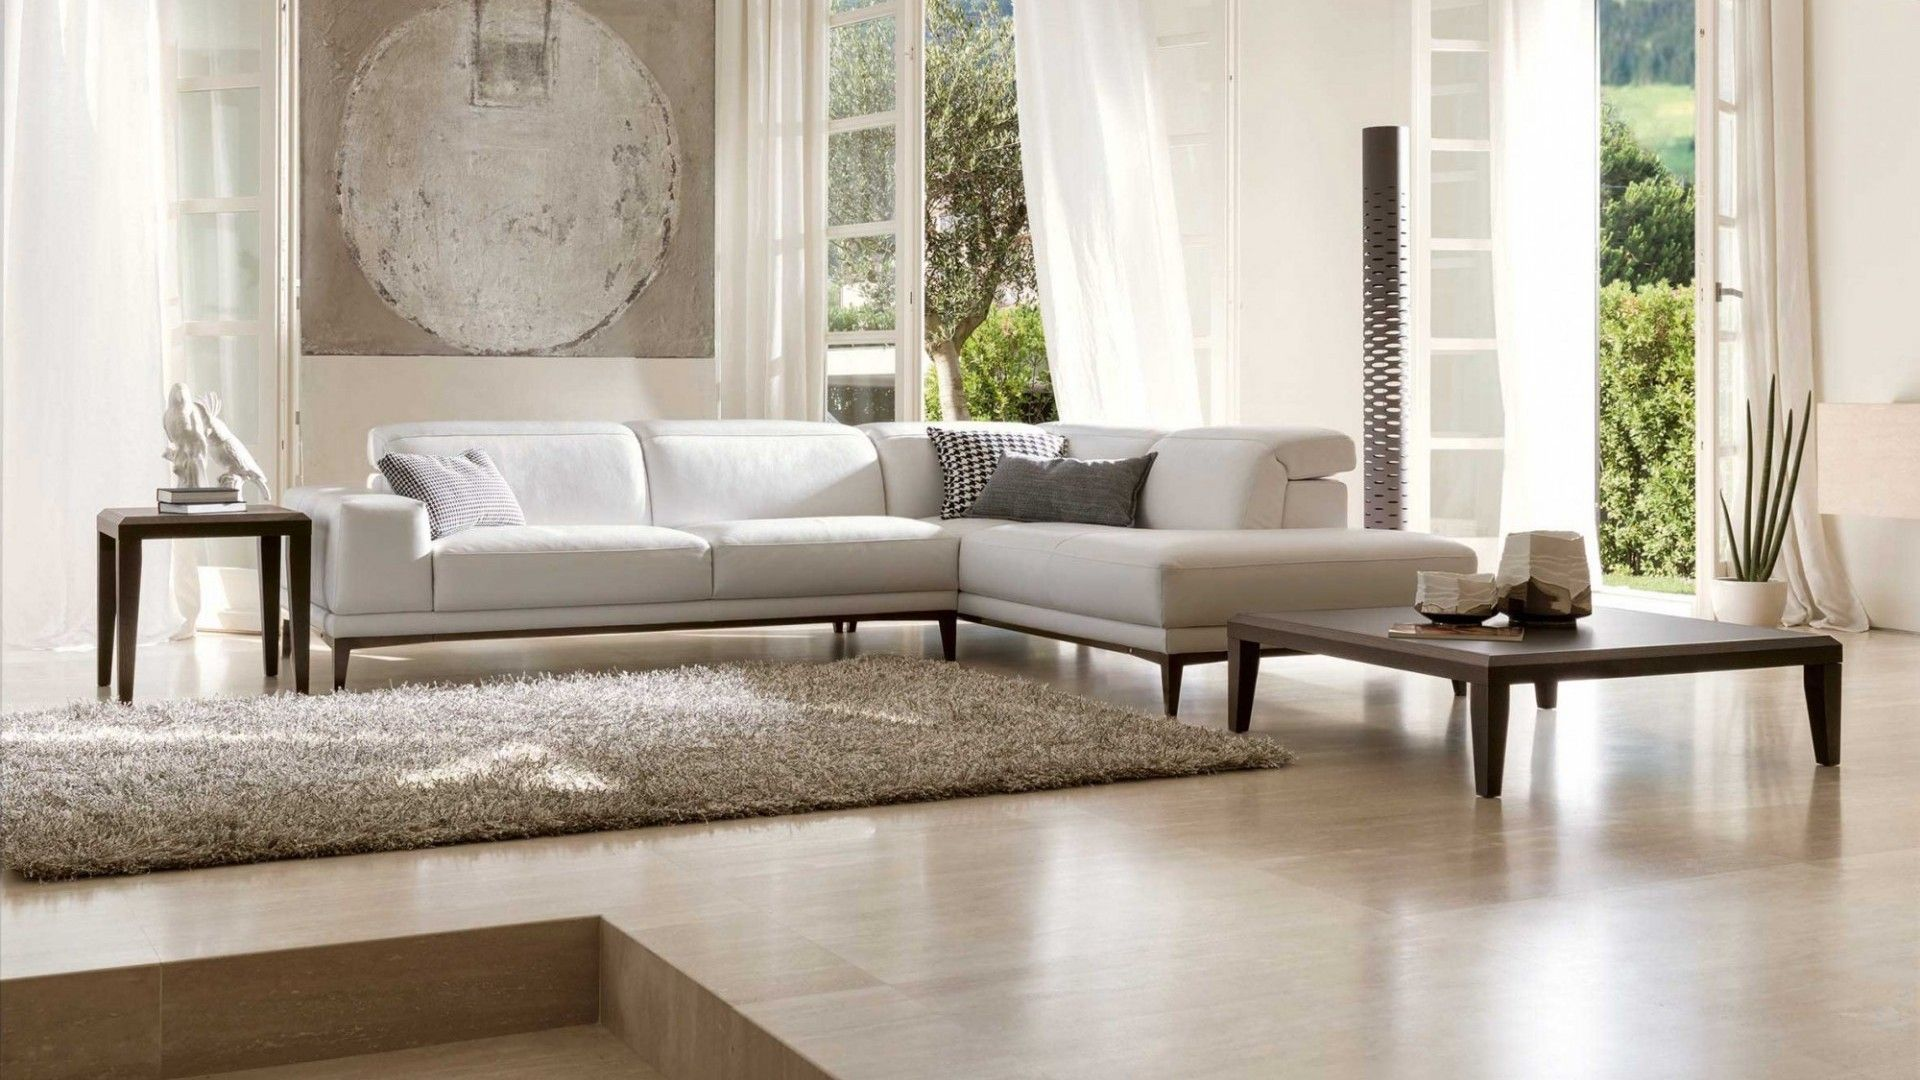 Designer Sofa Borghese Italian Modern Furniture From